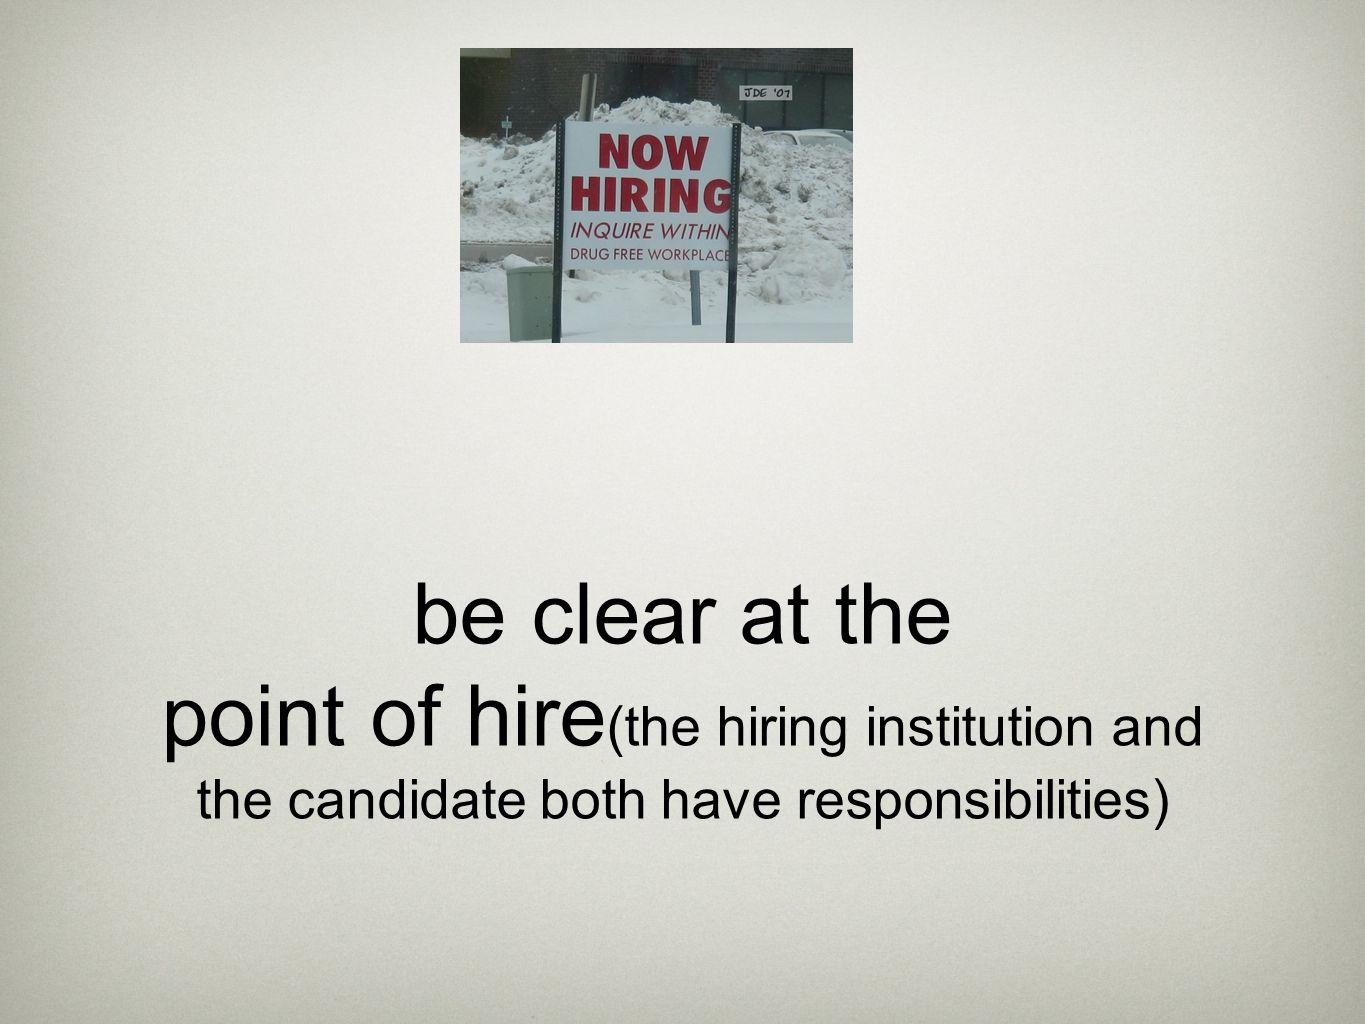 be clear at the point of hire (the hiring institution and the candidate both have responsibilities)